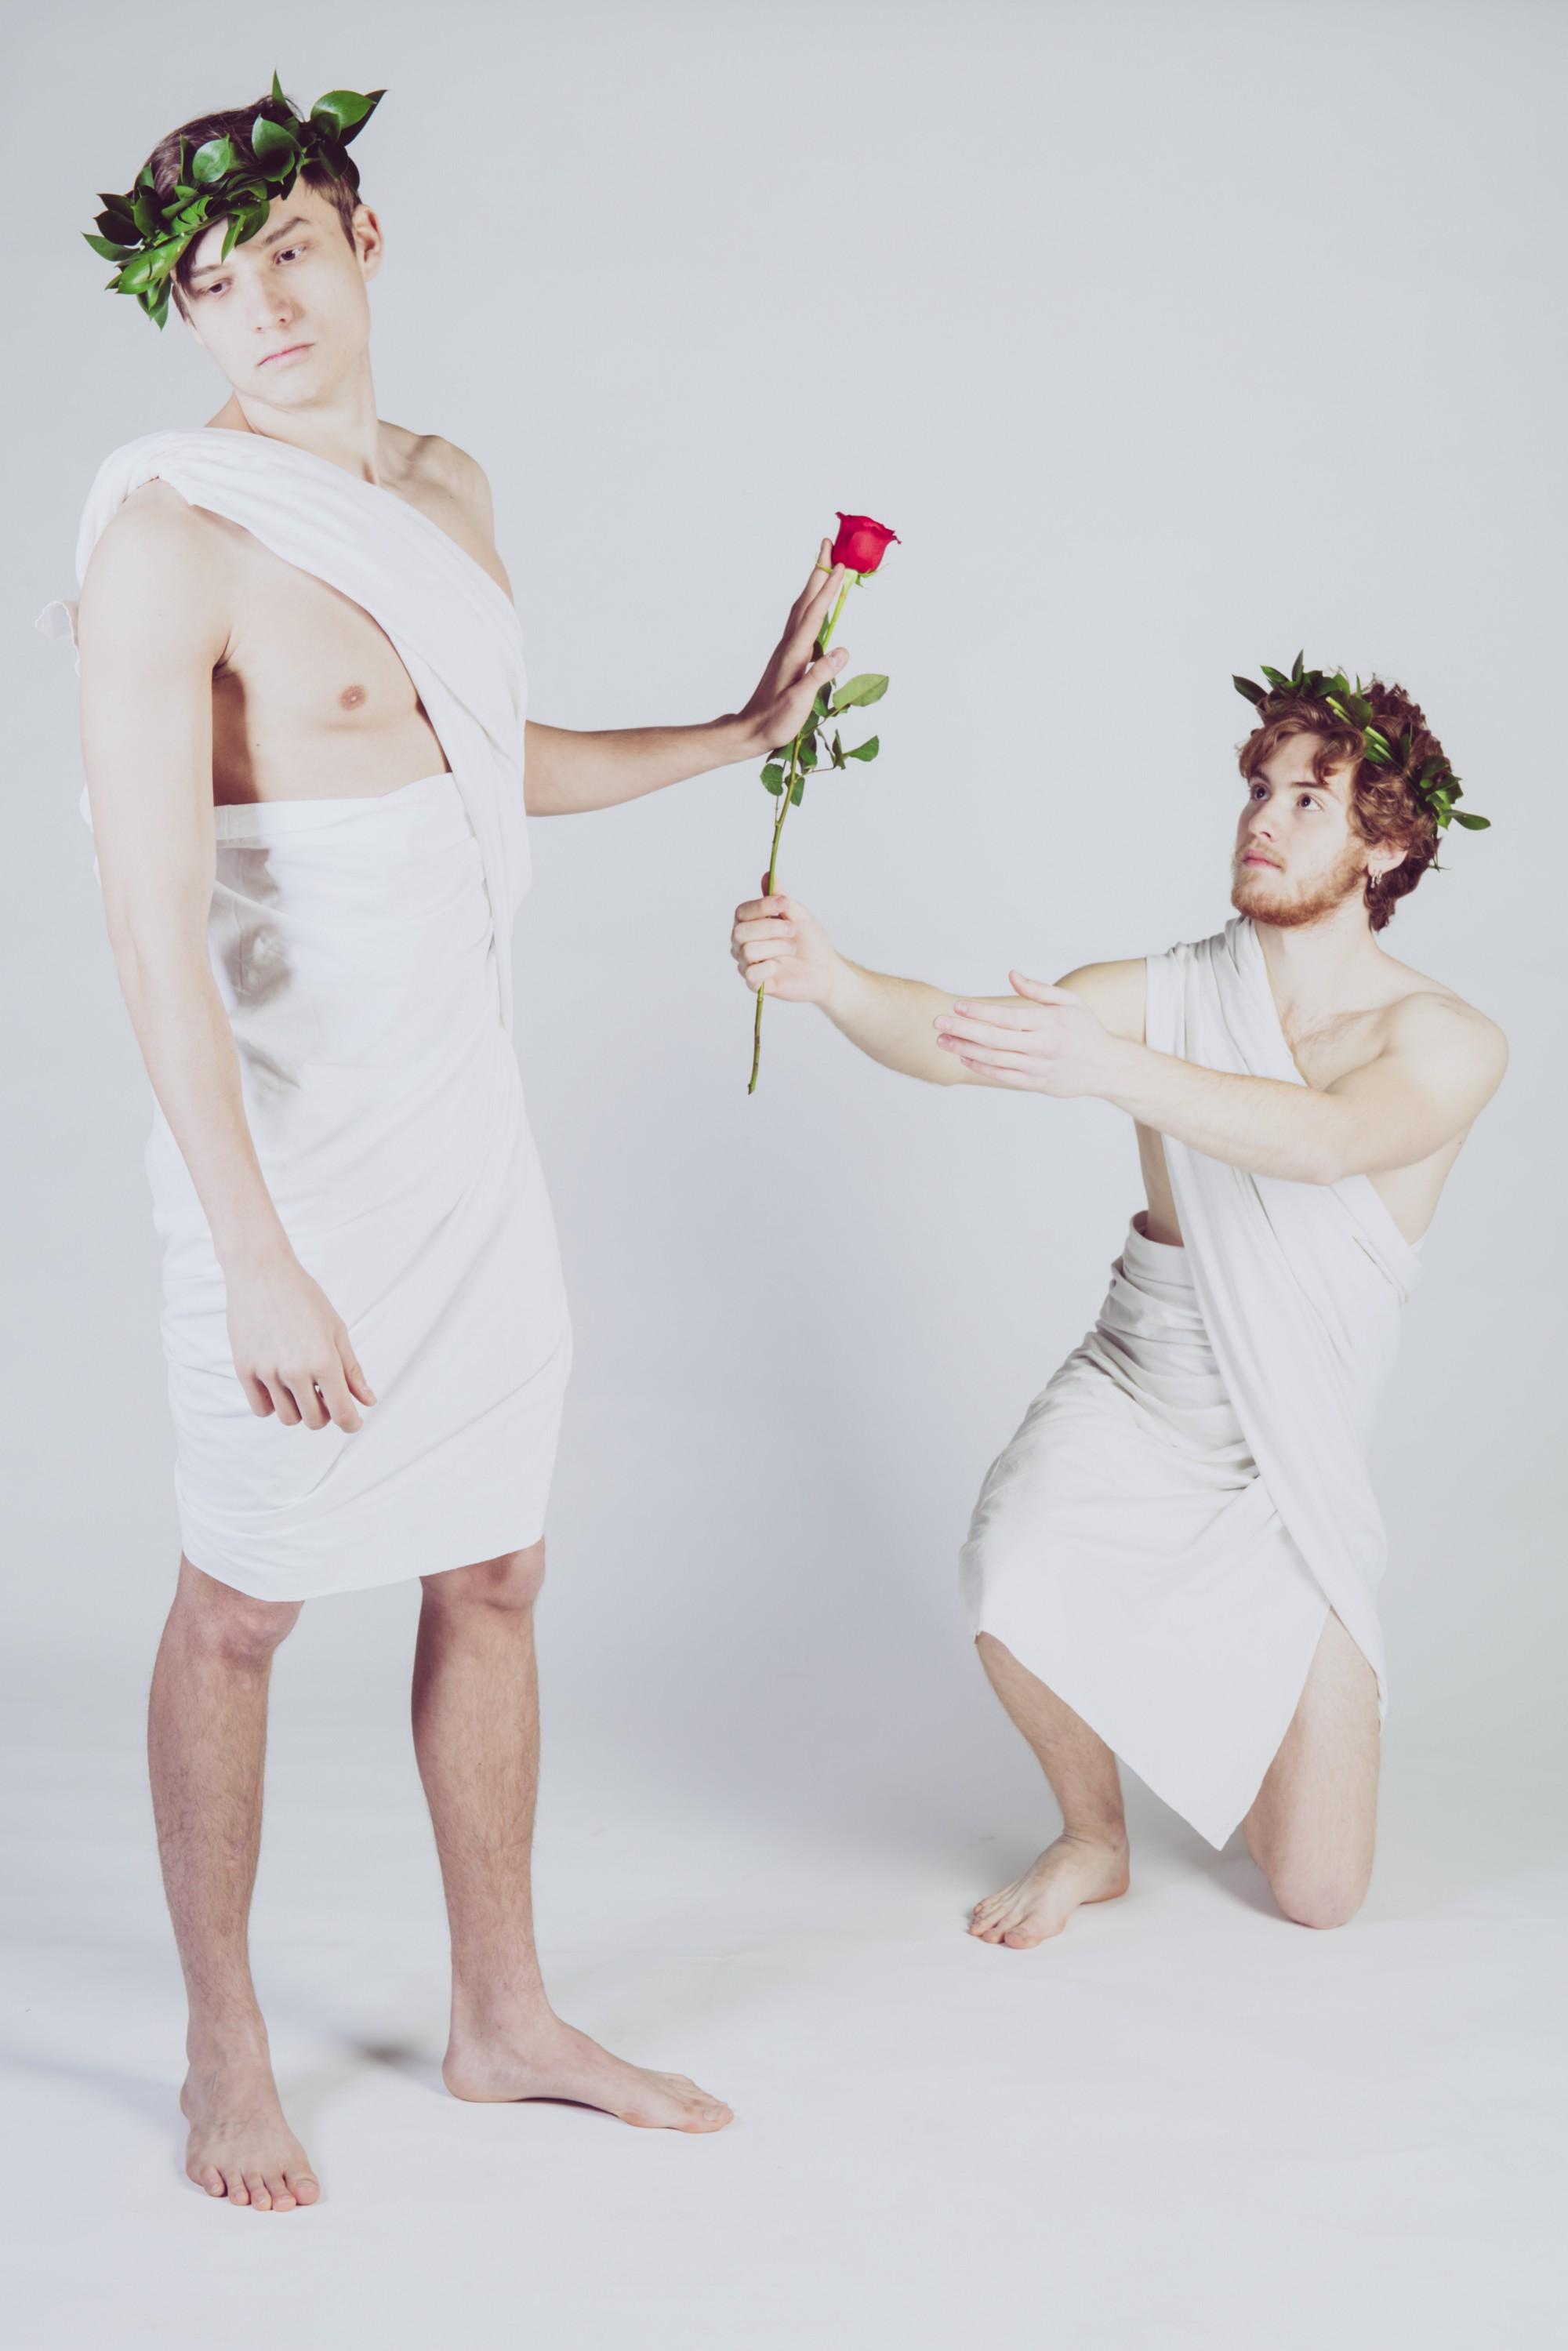 One person is kneeling and attempting to give a rose to a person standing looking disinterested and pushing the flower away.